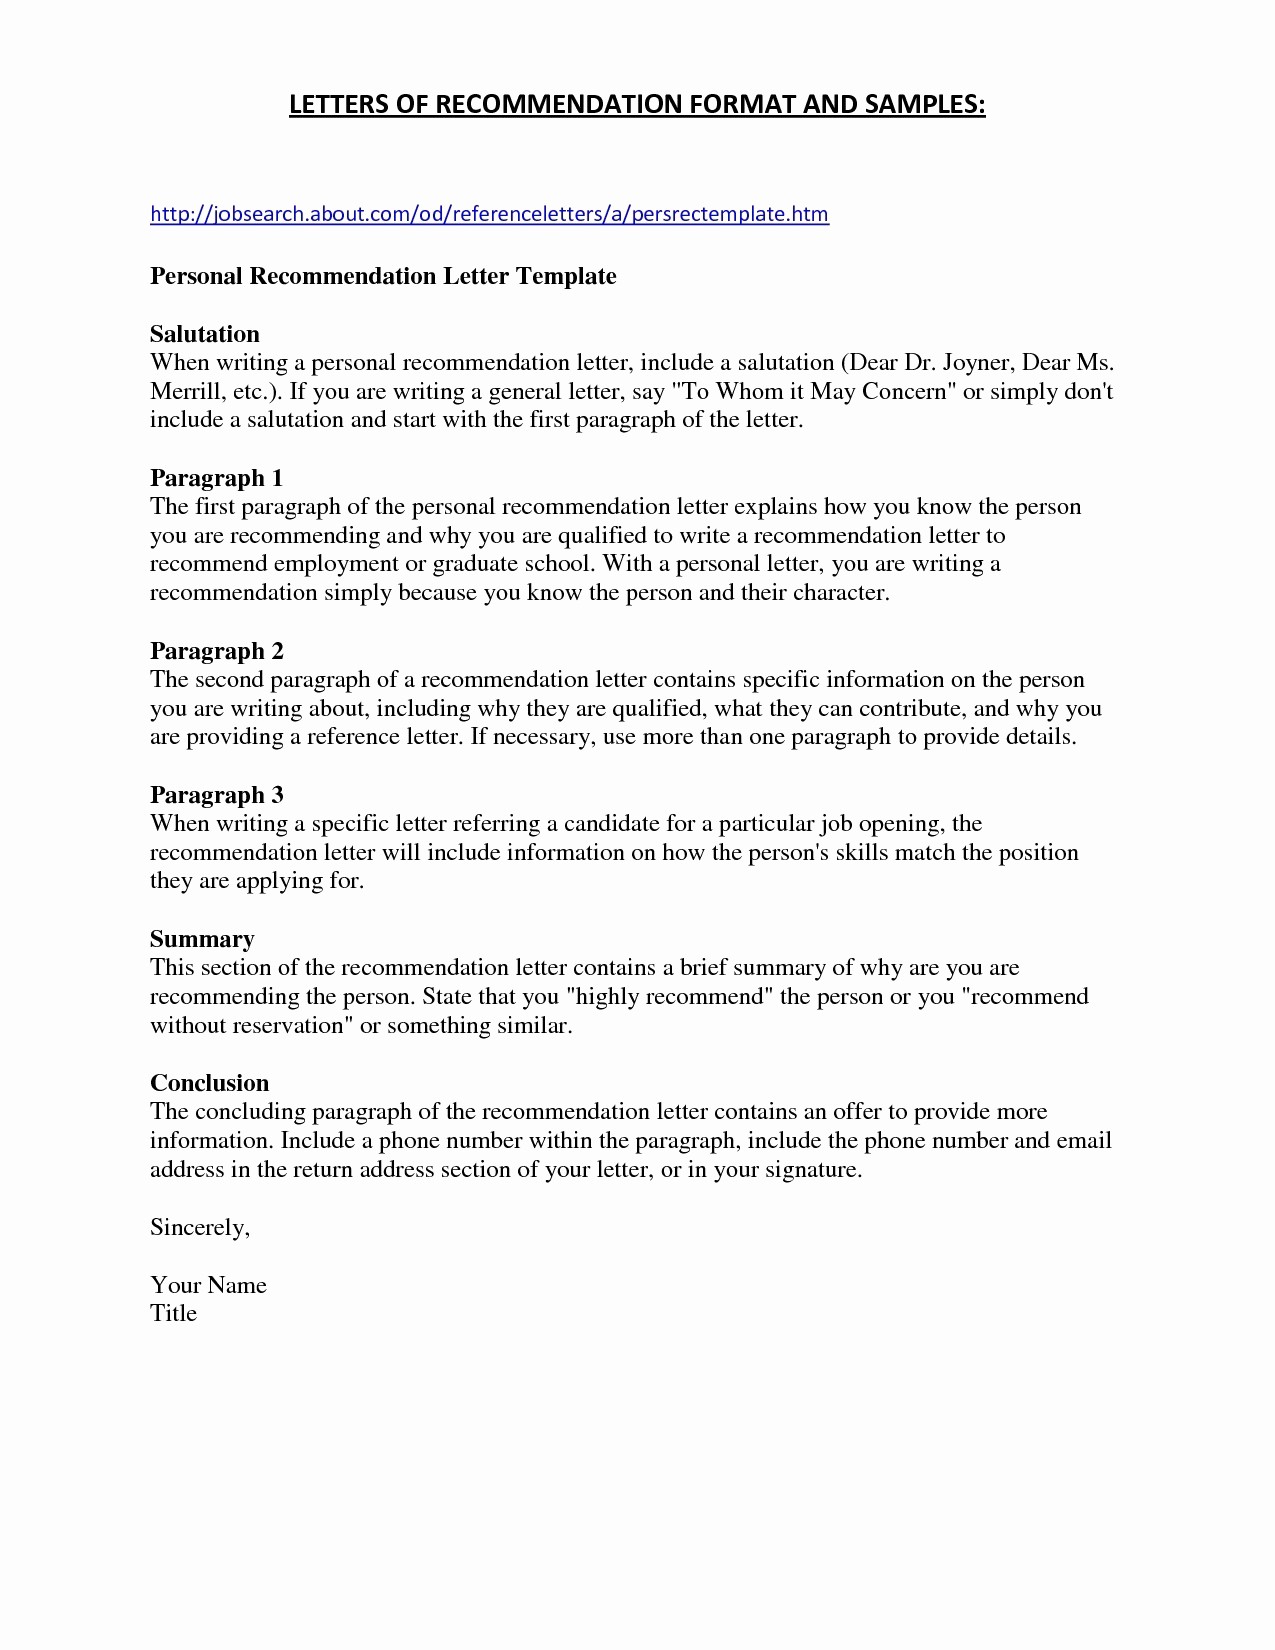 Cover Letter Template Retail Manager - Retail Manager Cover Letter Inspirational Retail Cover Letter